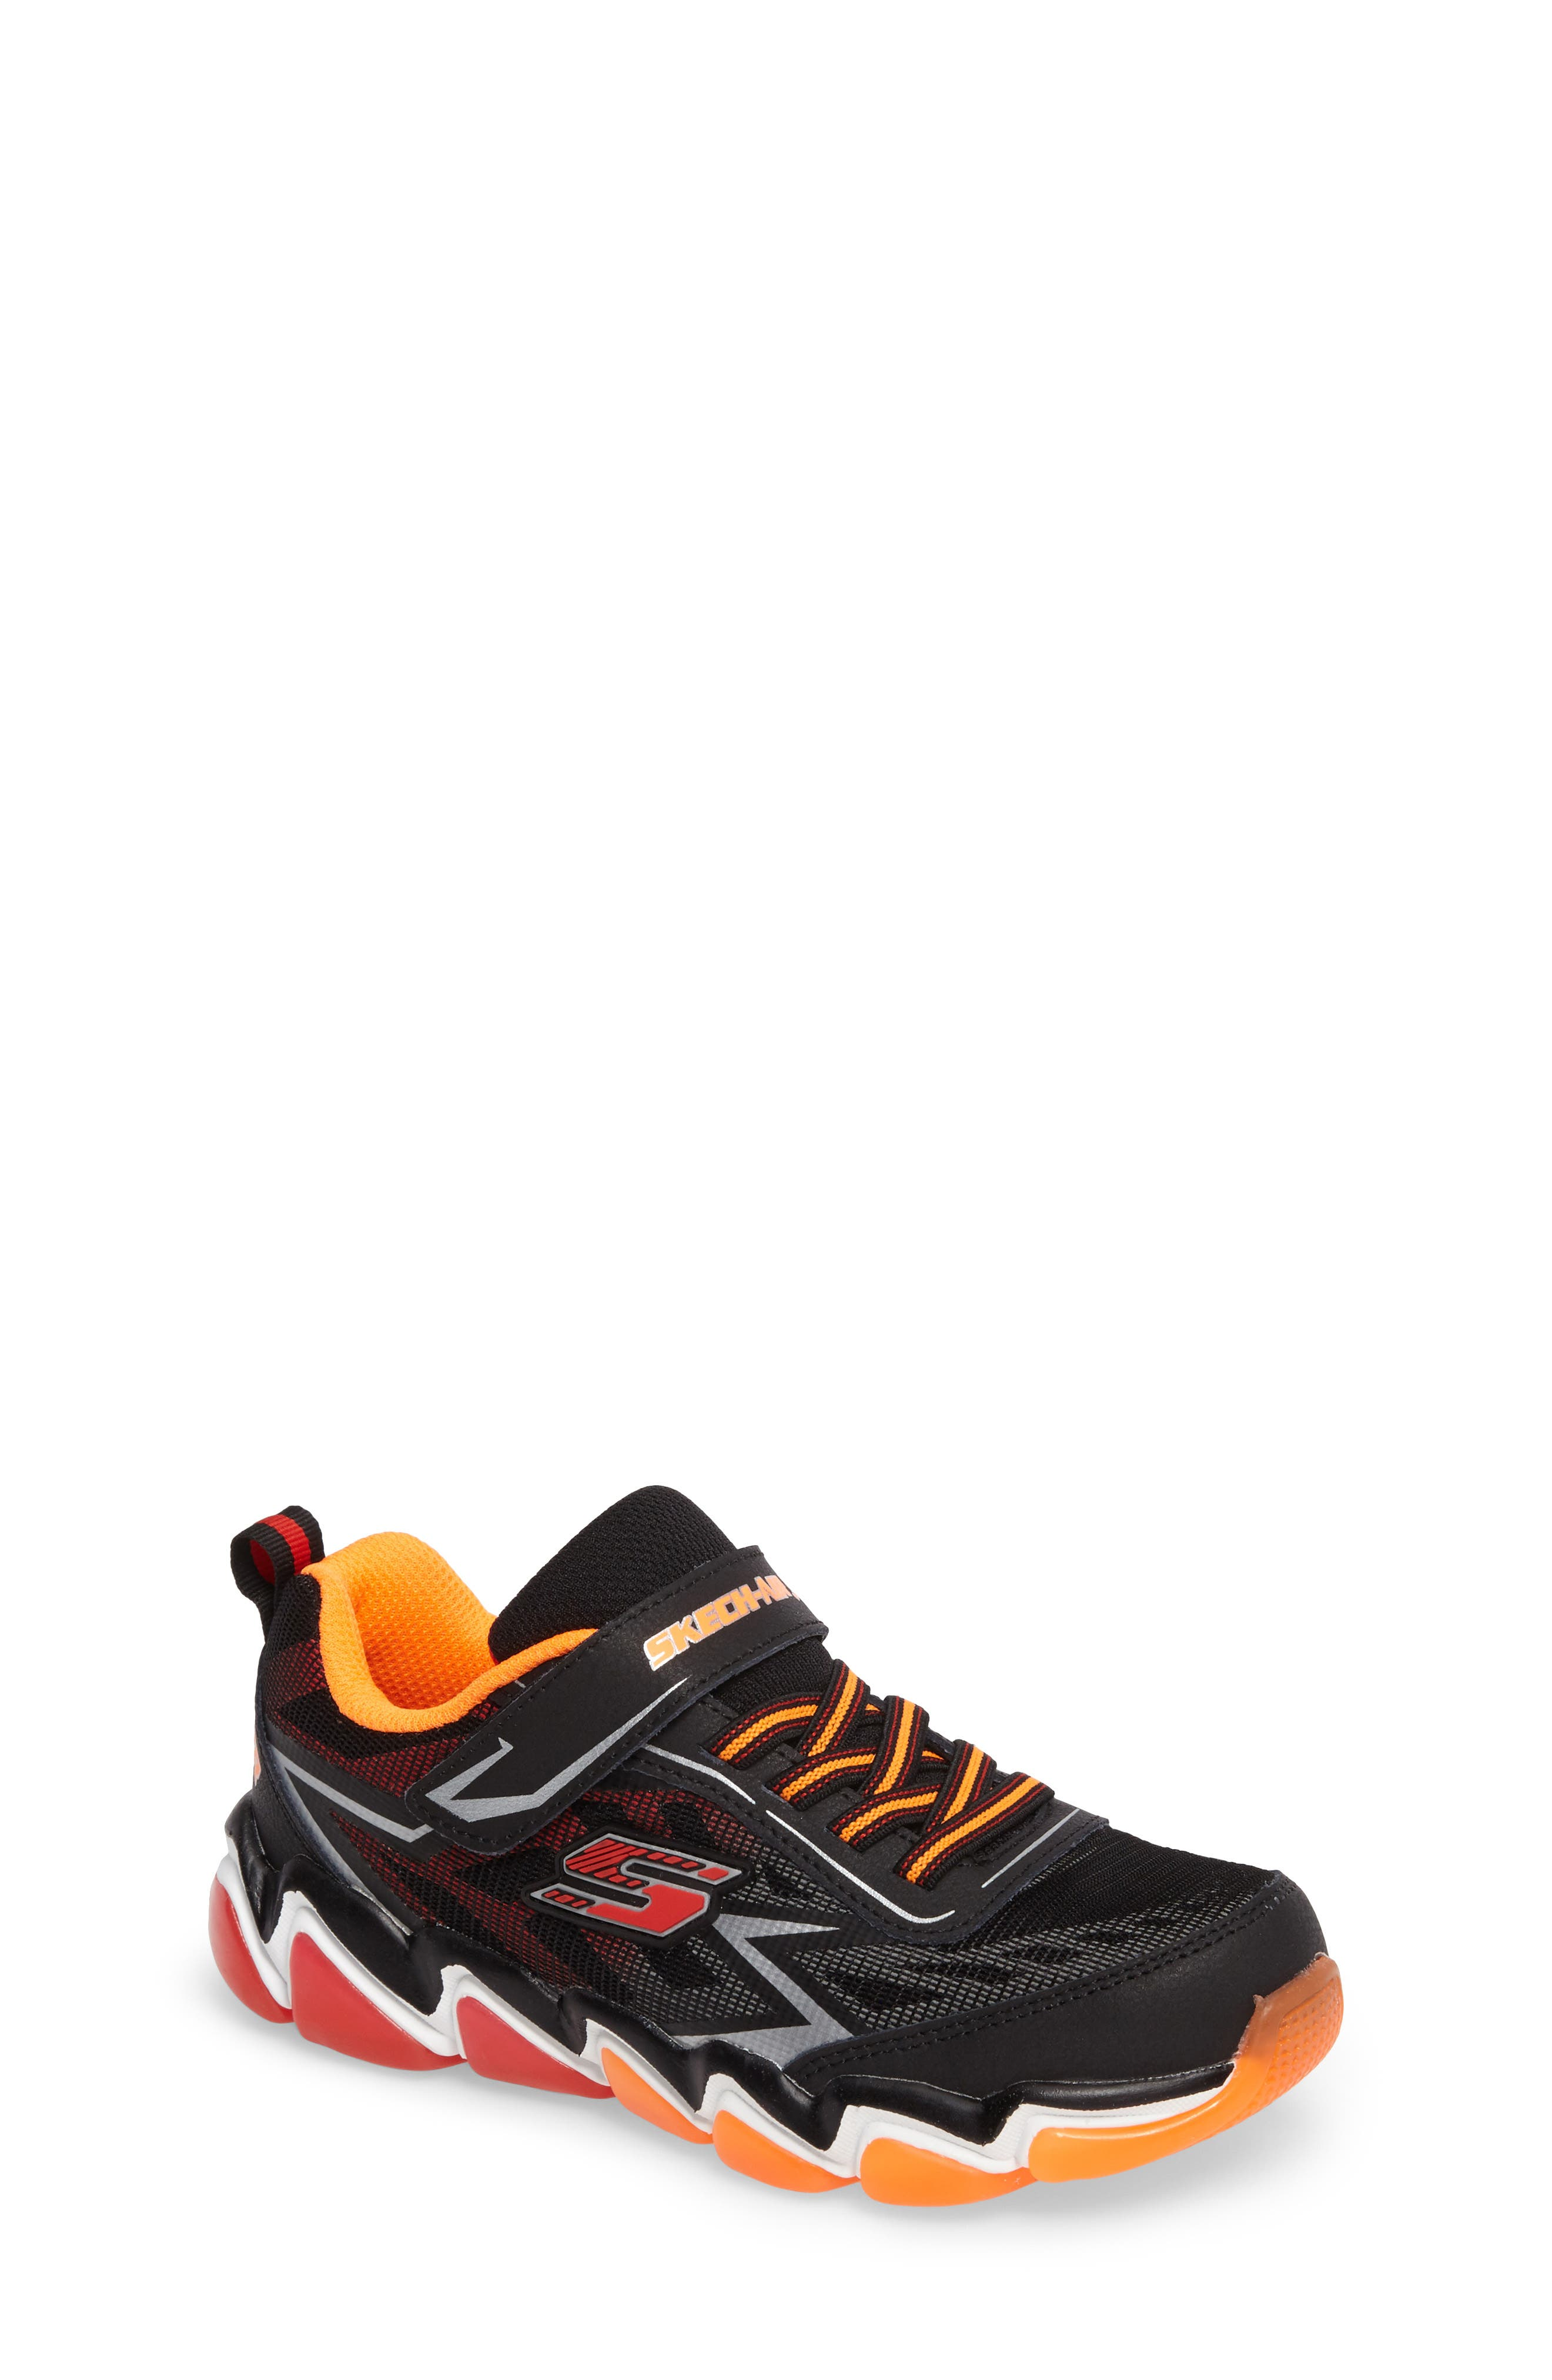 Skech-Air 3.0 Downswitch Sneaker,                         Main,                         color,